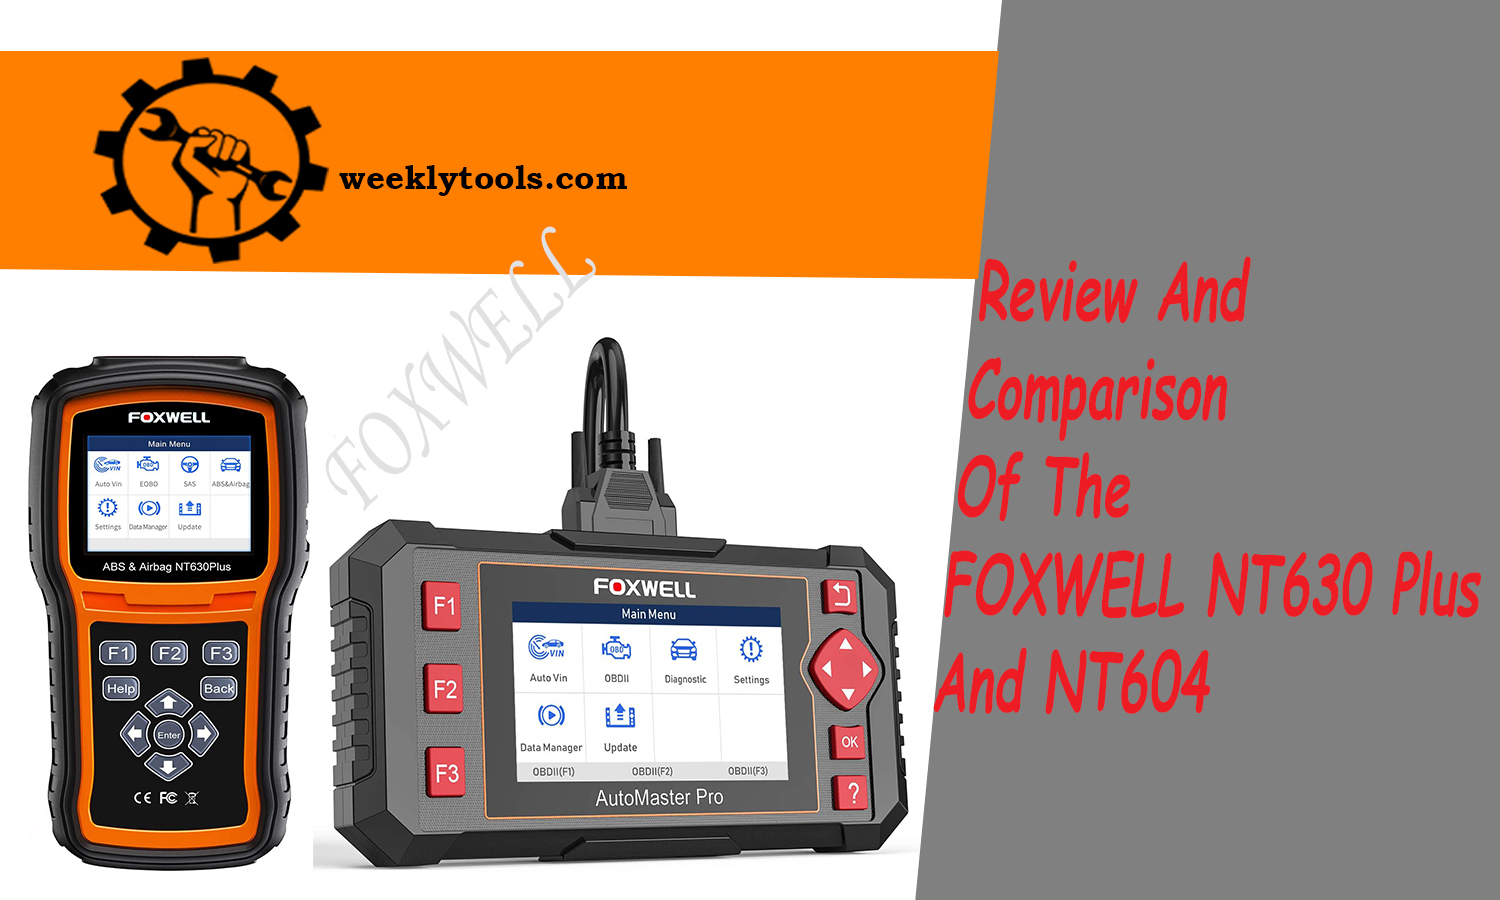 Review And Comparison Of The FOXWELL NT630 Plus And NT604